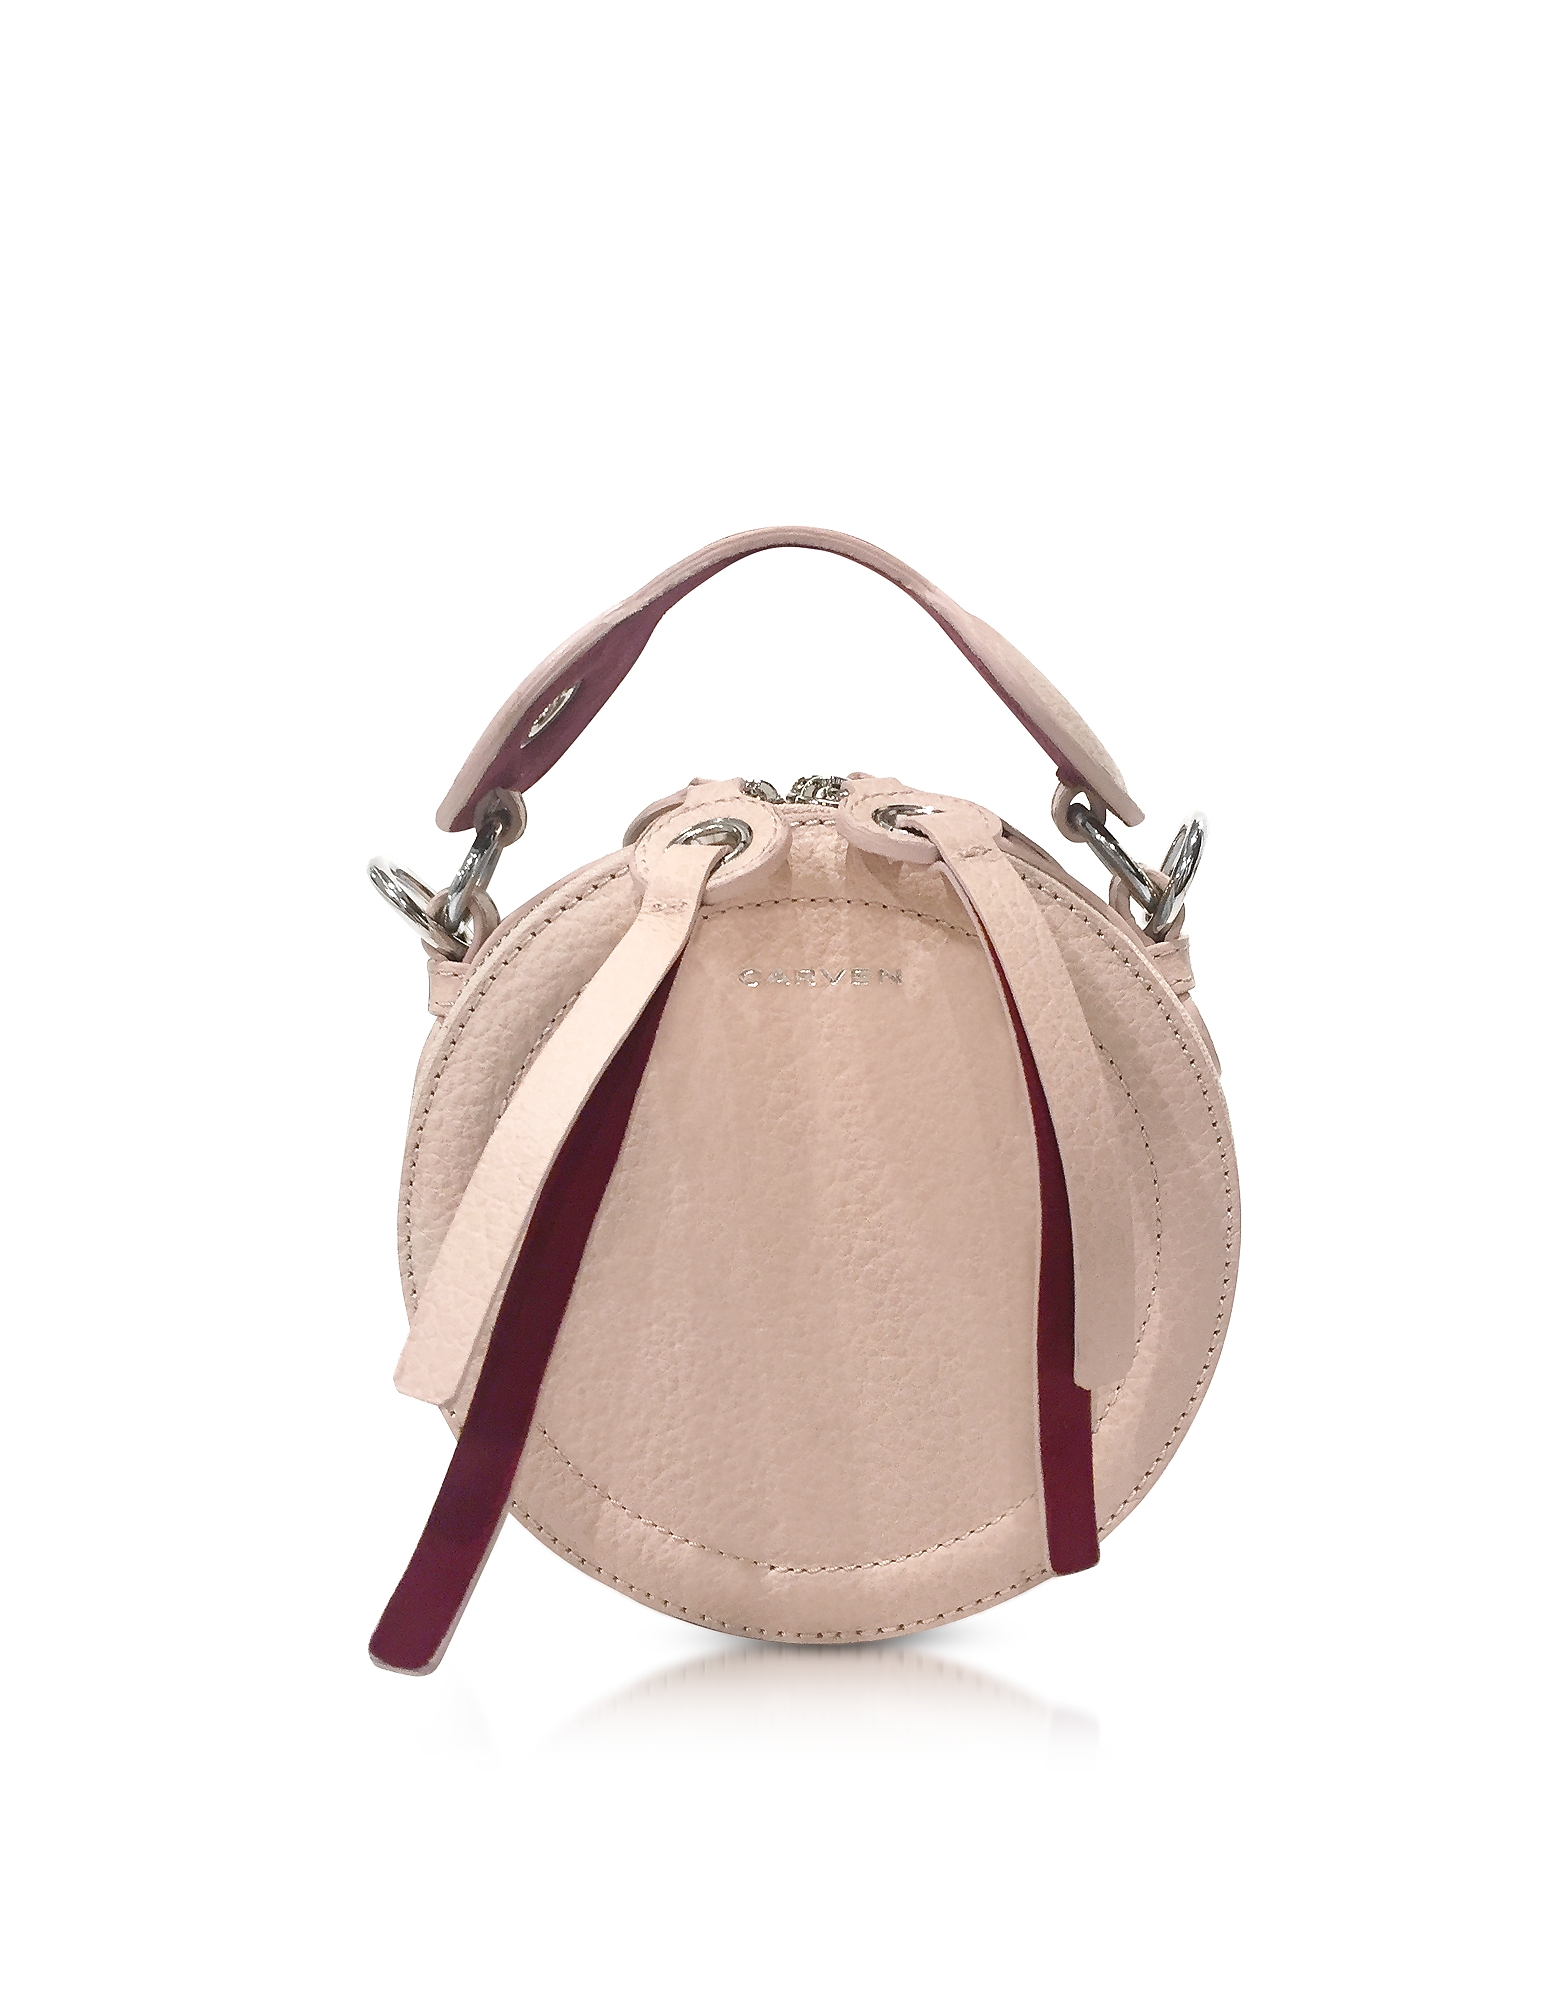 Carven Handbags, Orsay Nude Leather Round Crossbody Bag